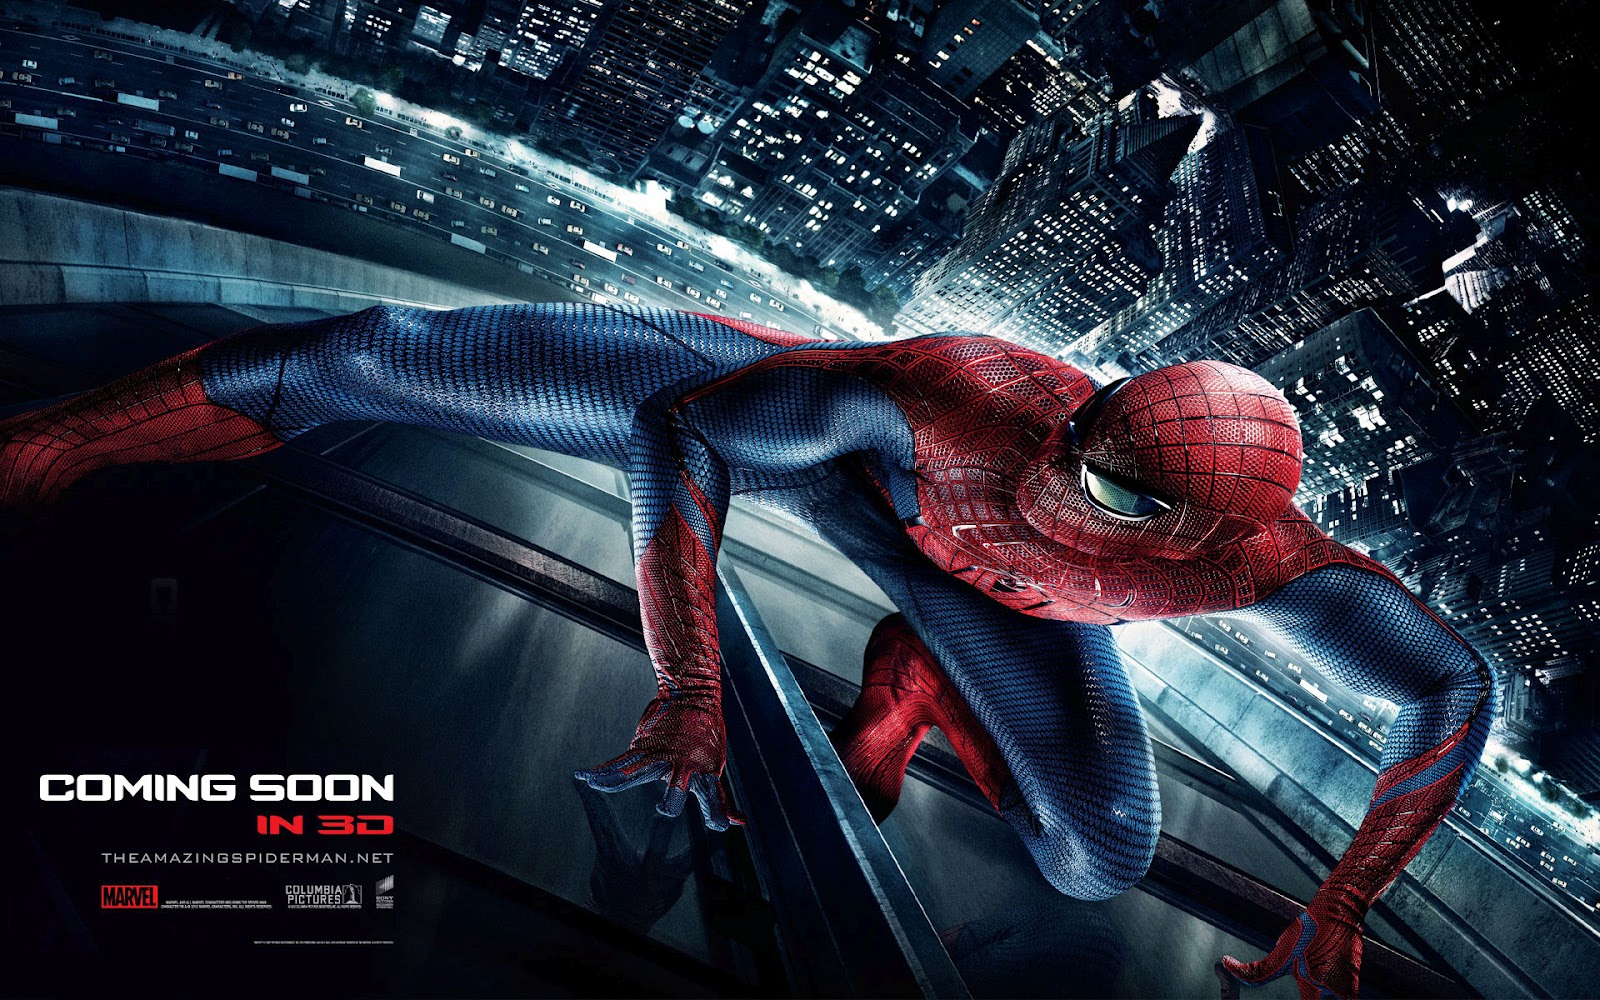 http://2.bp.blogspot.com/-sD-cchR5r4I/UACLTzINiGI/AAAAAAAAAHM/fimE4hDbtOw/s1600/wallpaper_hd_amazing_spiderman-1920x1200_andrew_garfield.jpeg